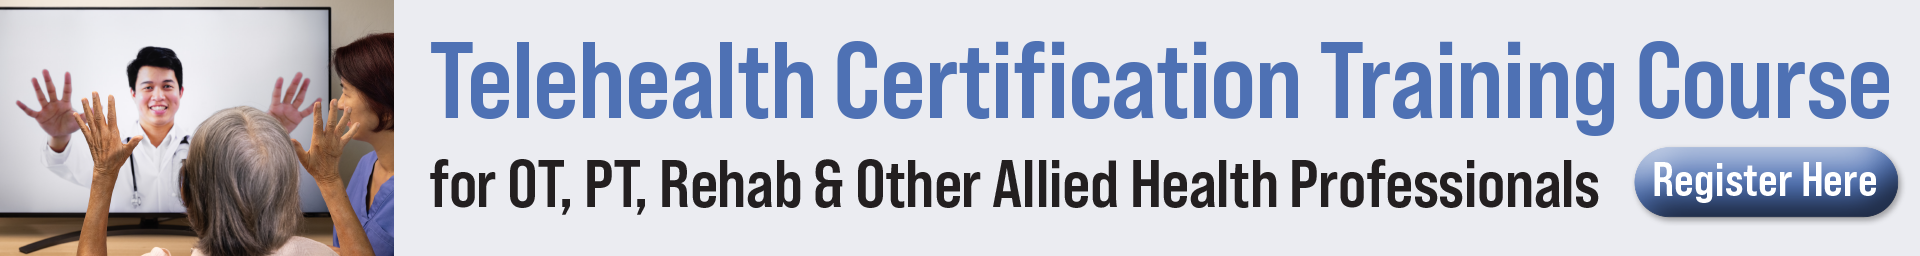 Telehealth Certification Training Course for Allied Health Professionals